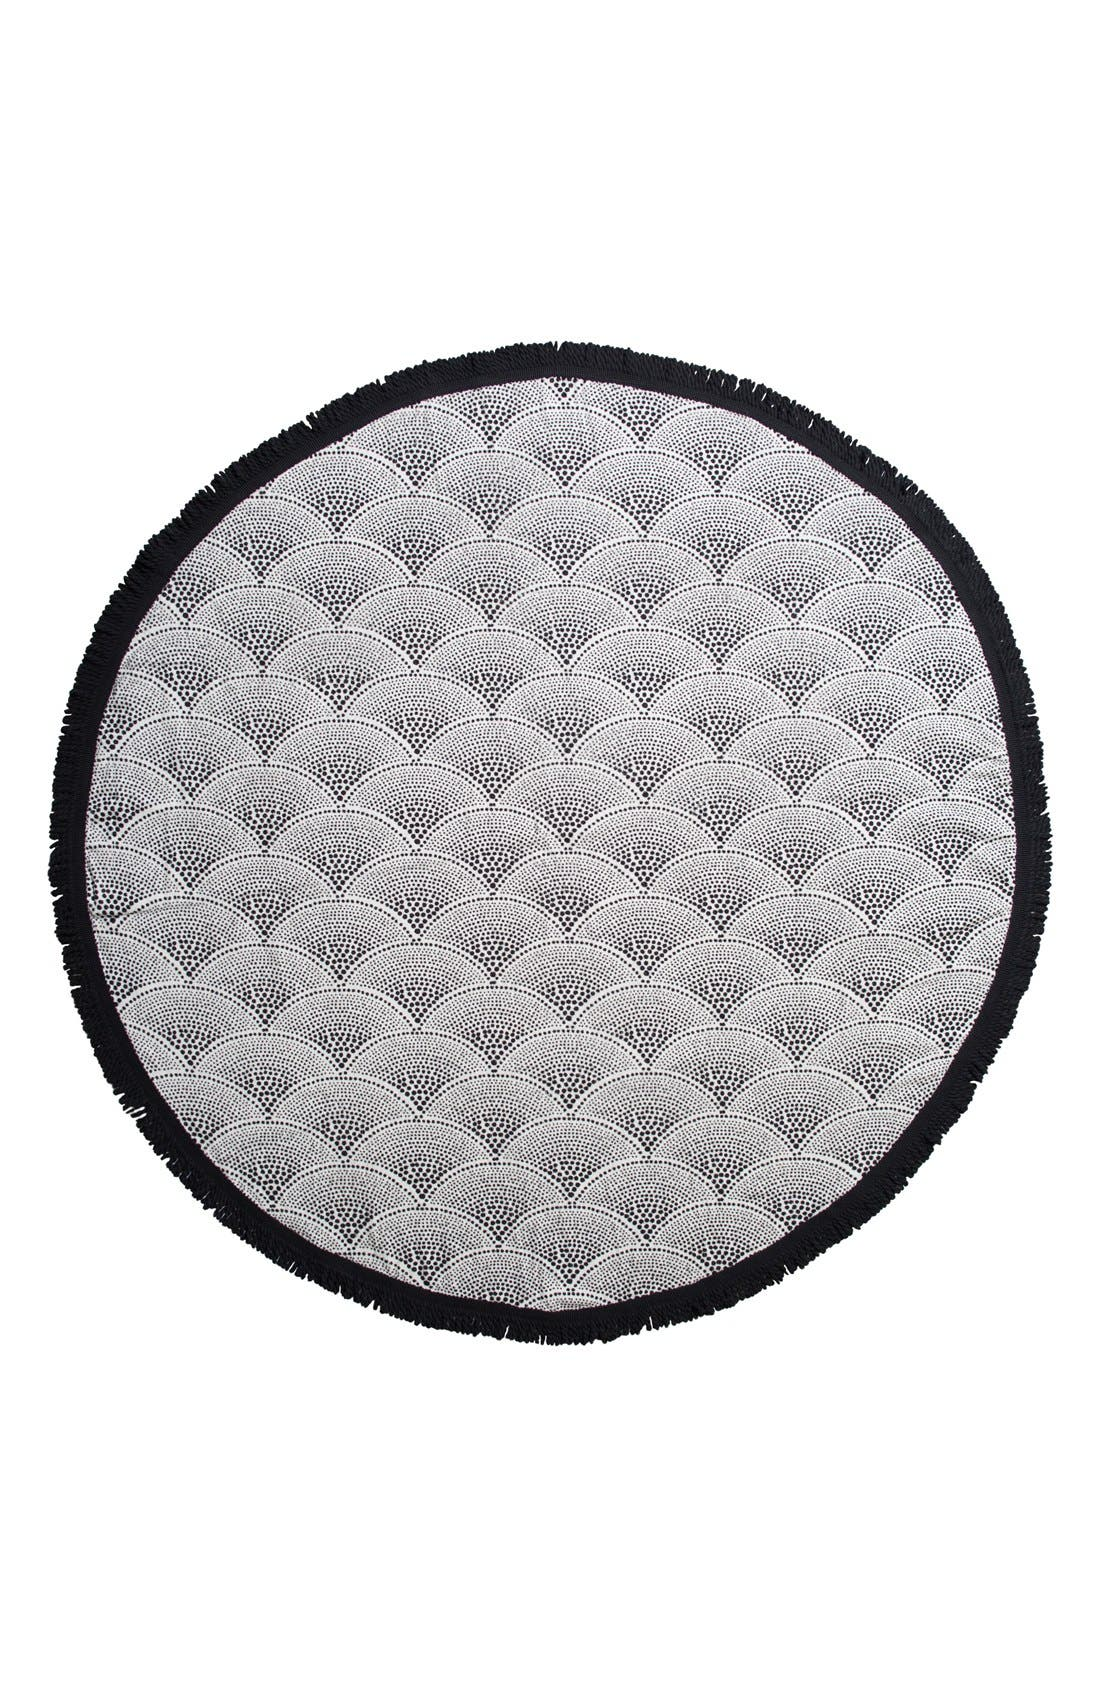 The Beach People 'Amaroo' Round Beach Towel